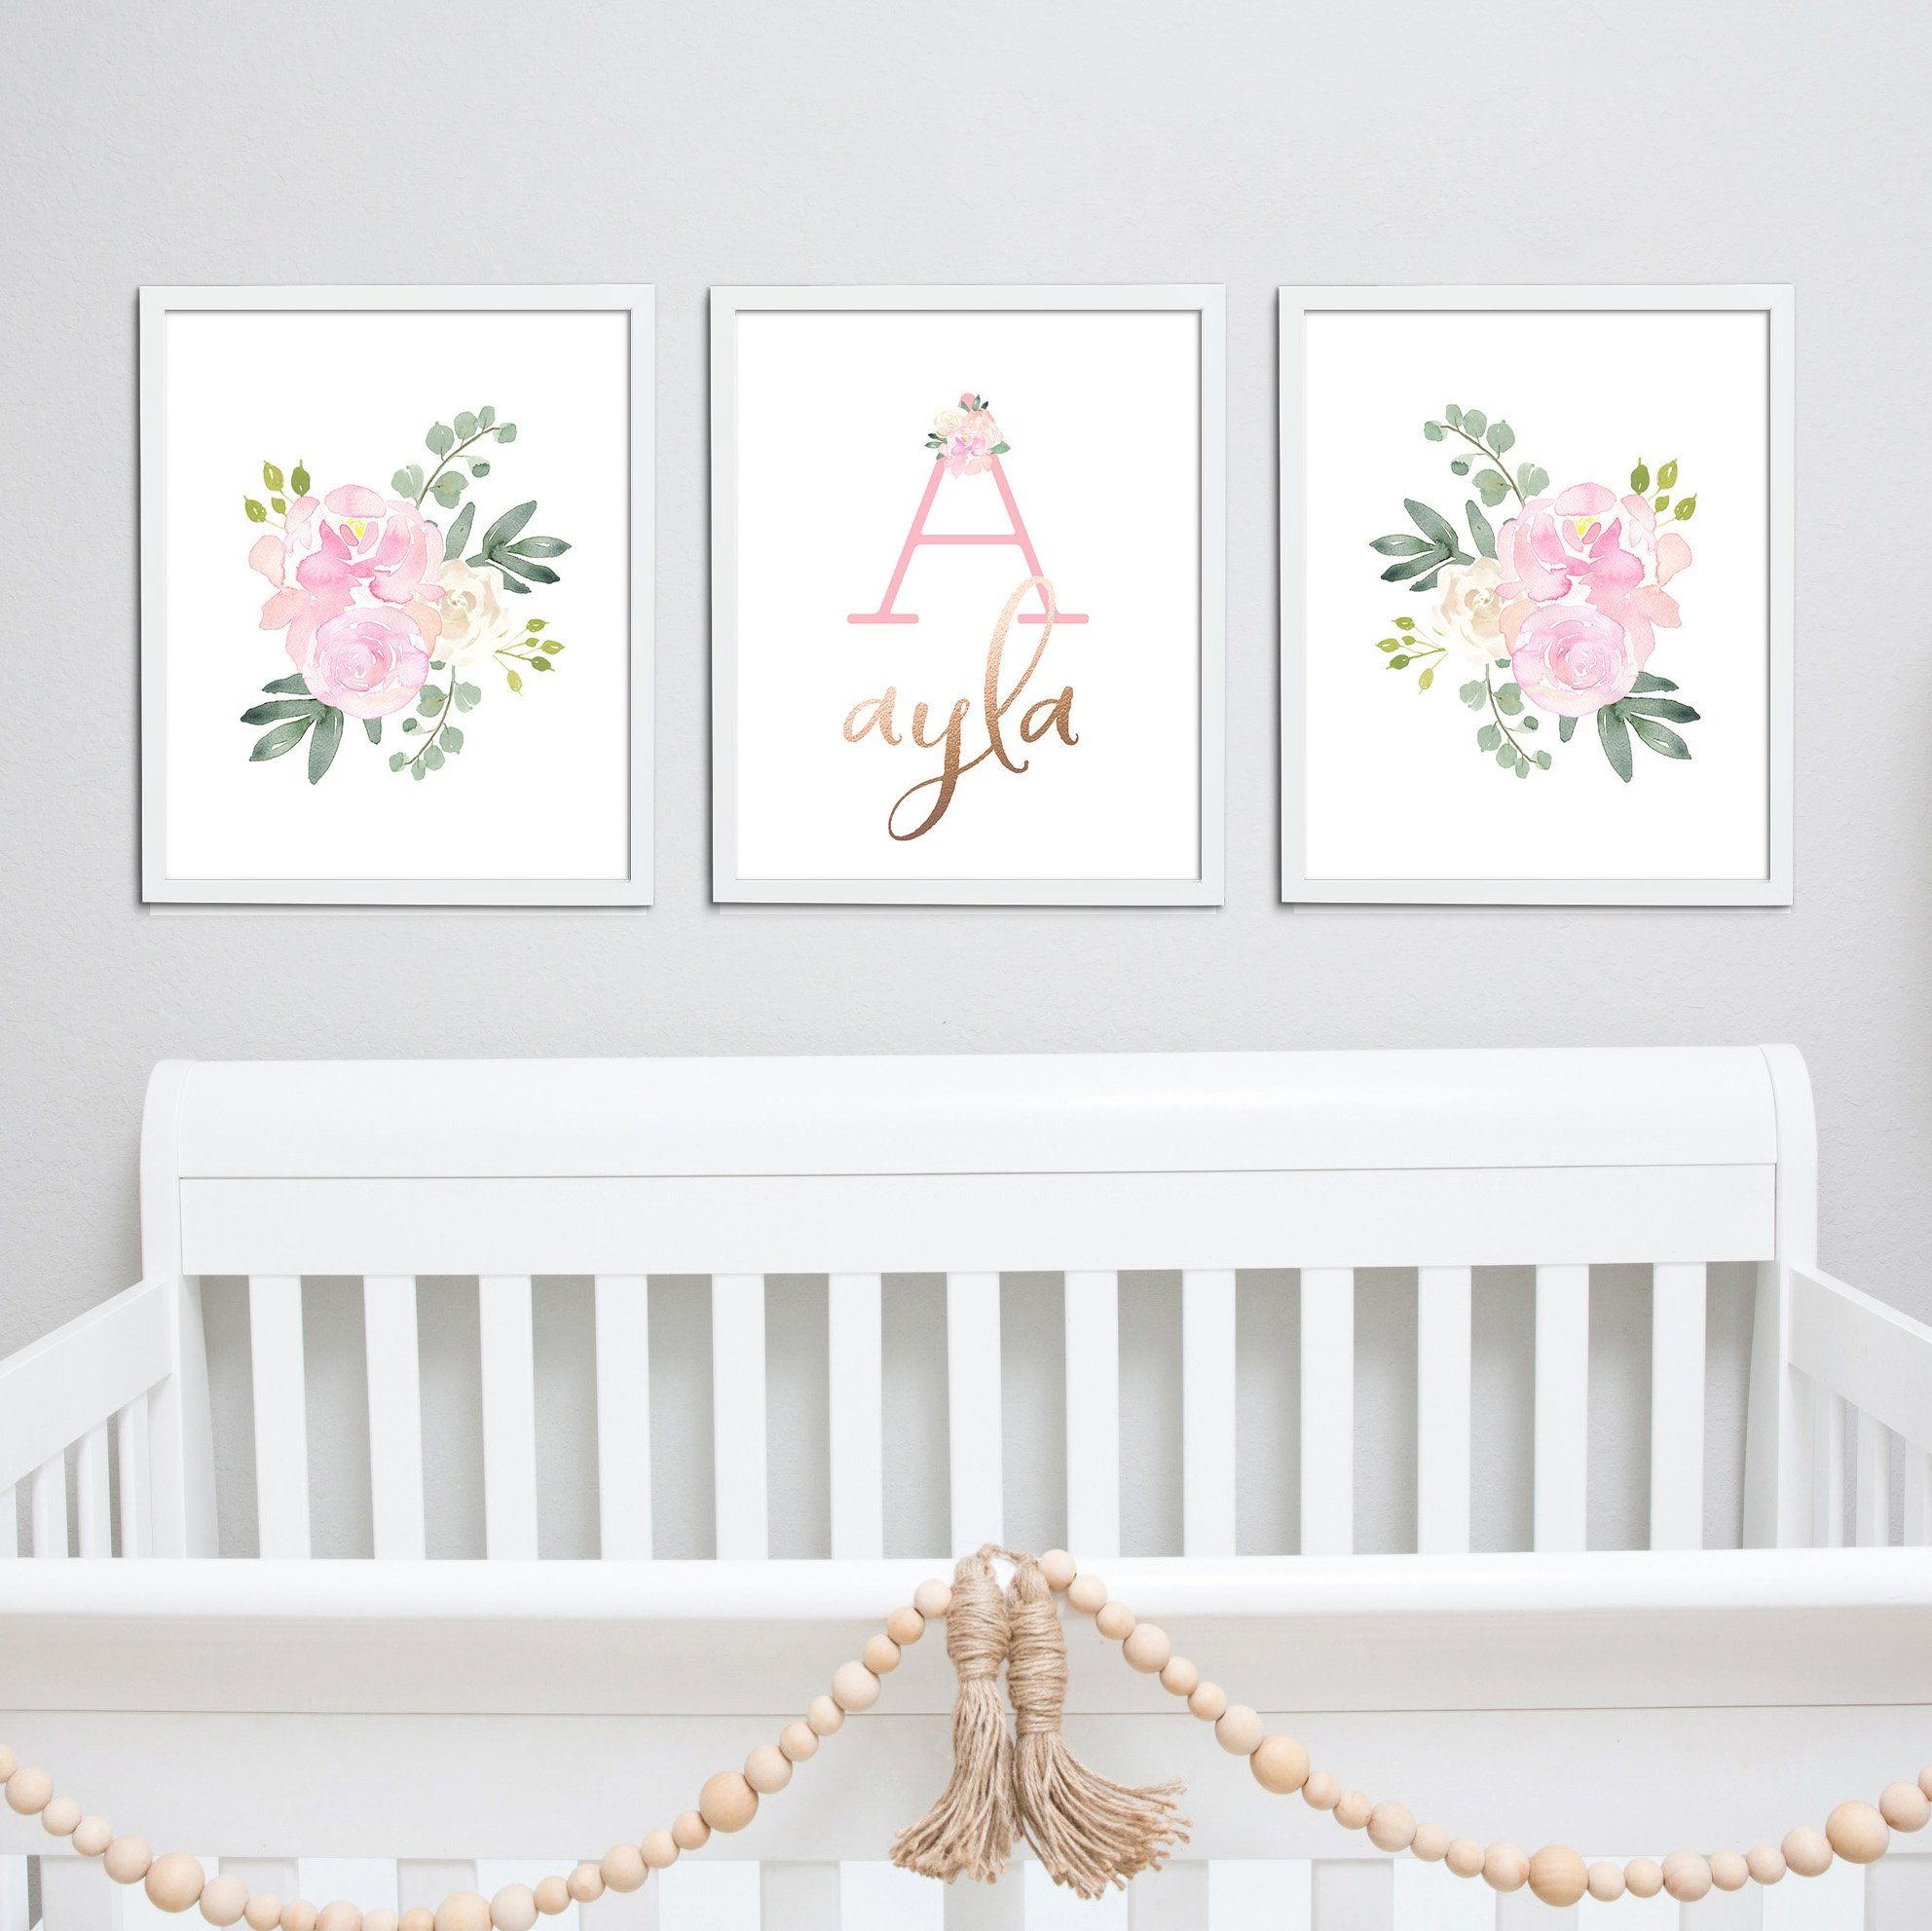 Light Pink #4 // Set of 3 Prints Nursery Prints TheGracefulGoose